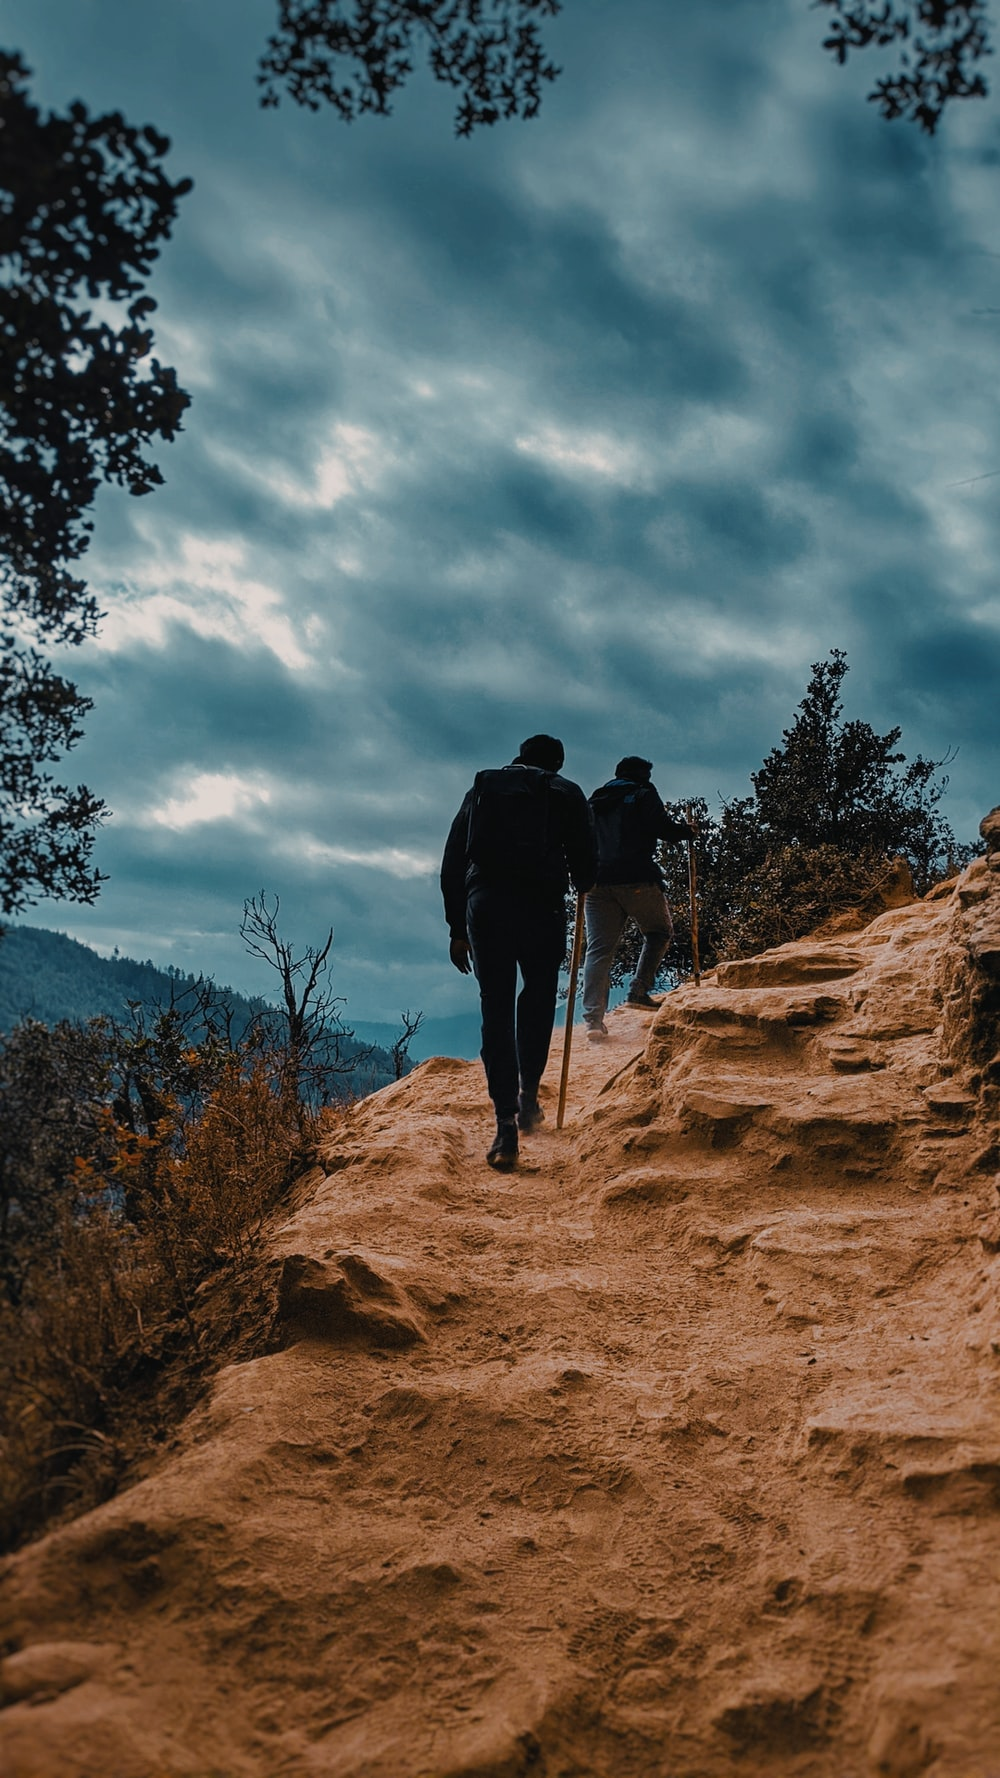 two men hiking on rocky field during day